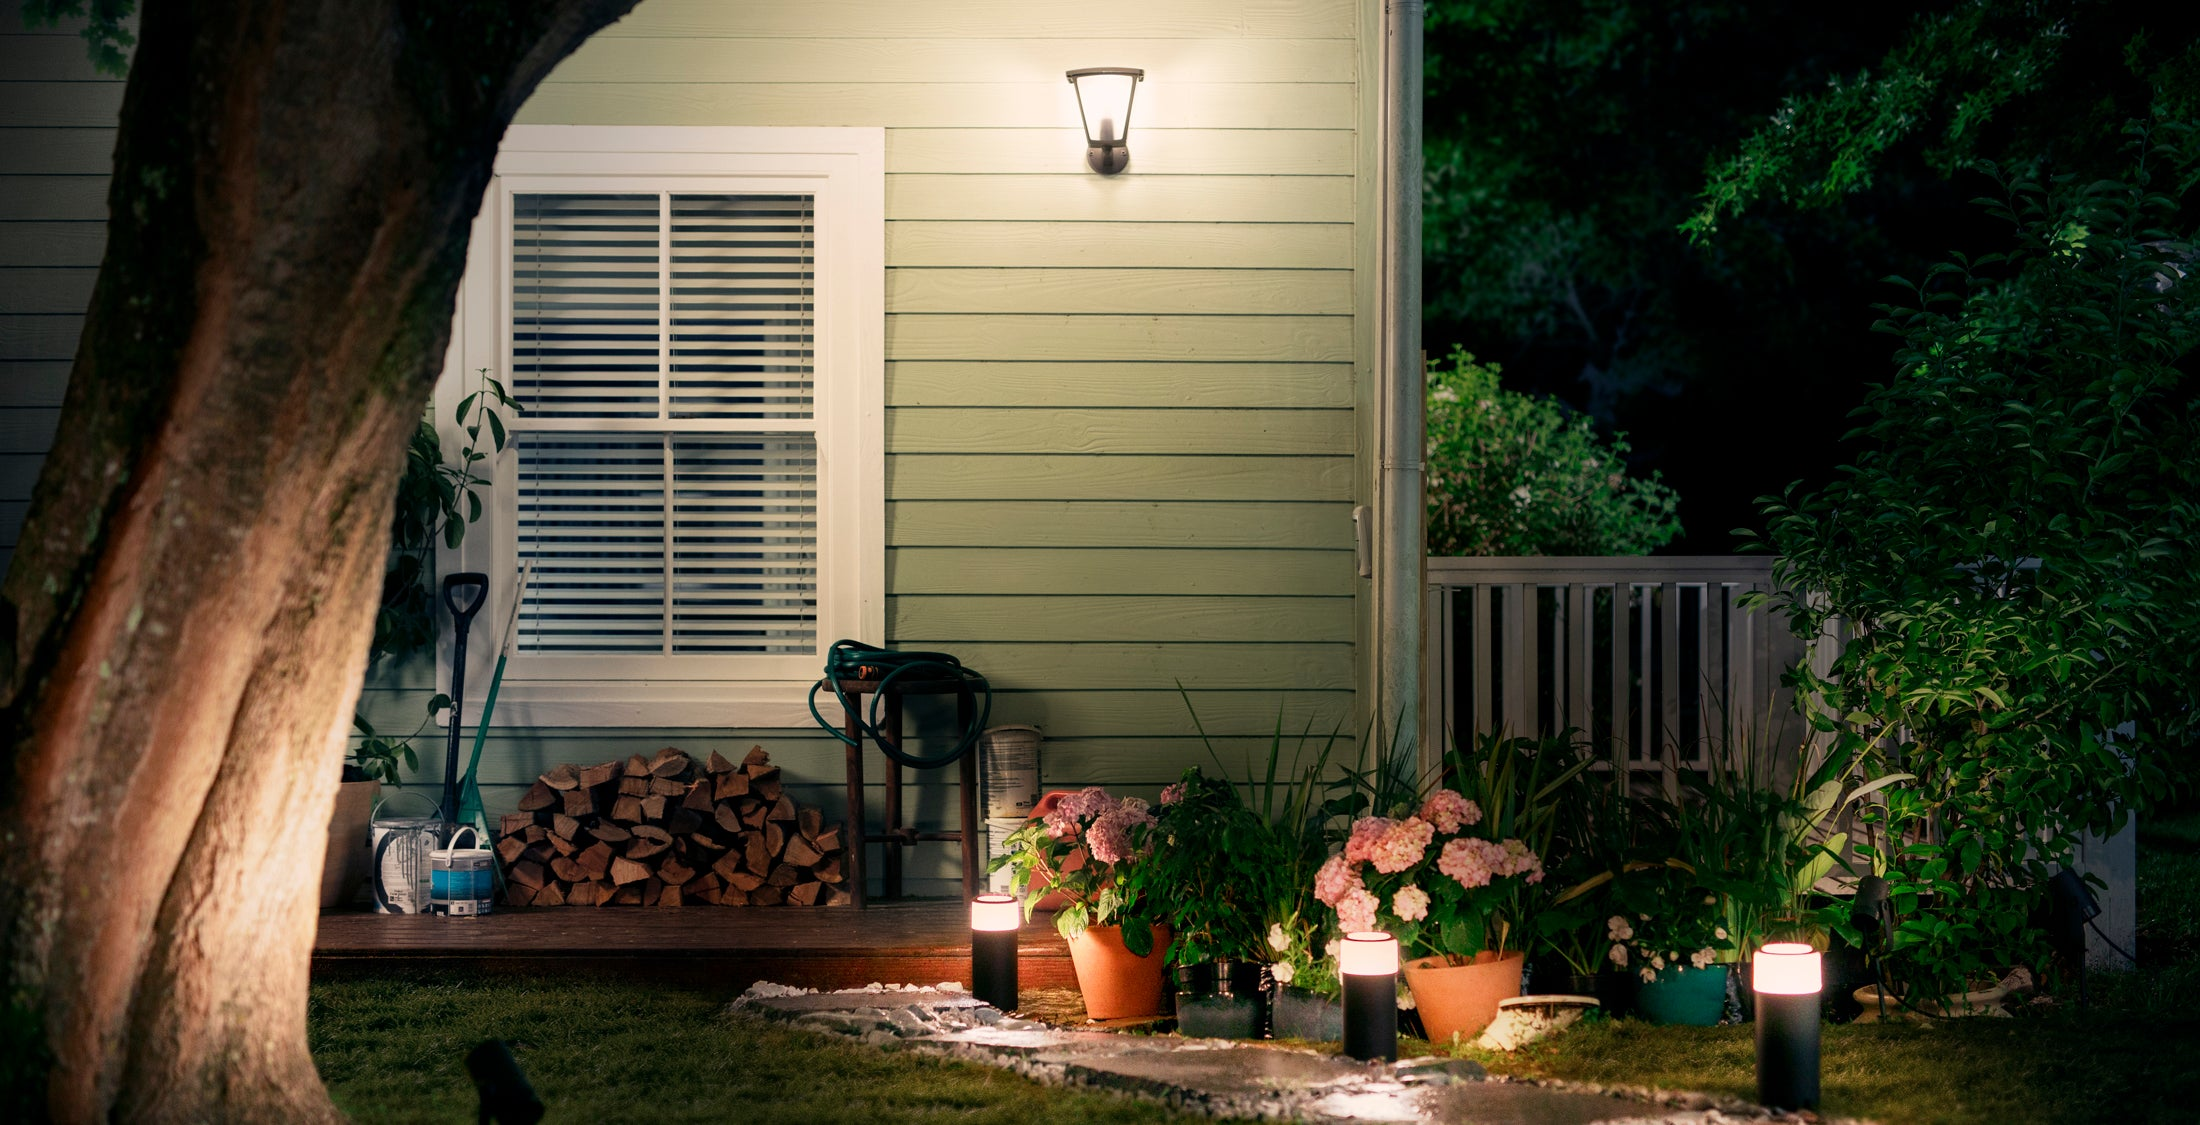 Philips Hue Review Trusted Reviews Household Lighting Wiring Diagram Uk New Outdoor Coming